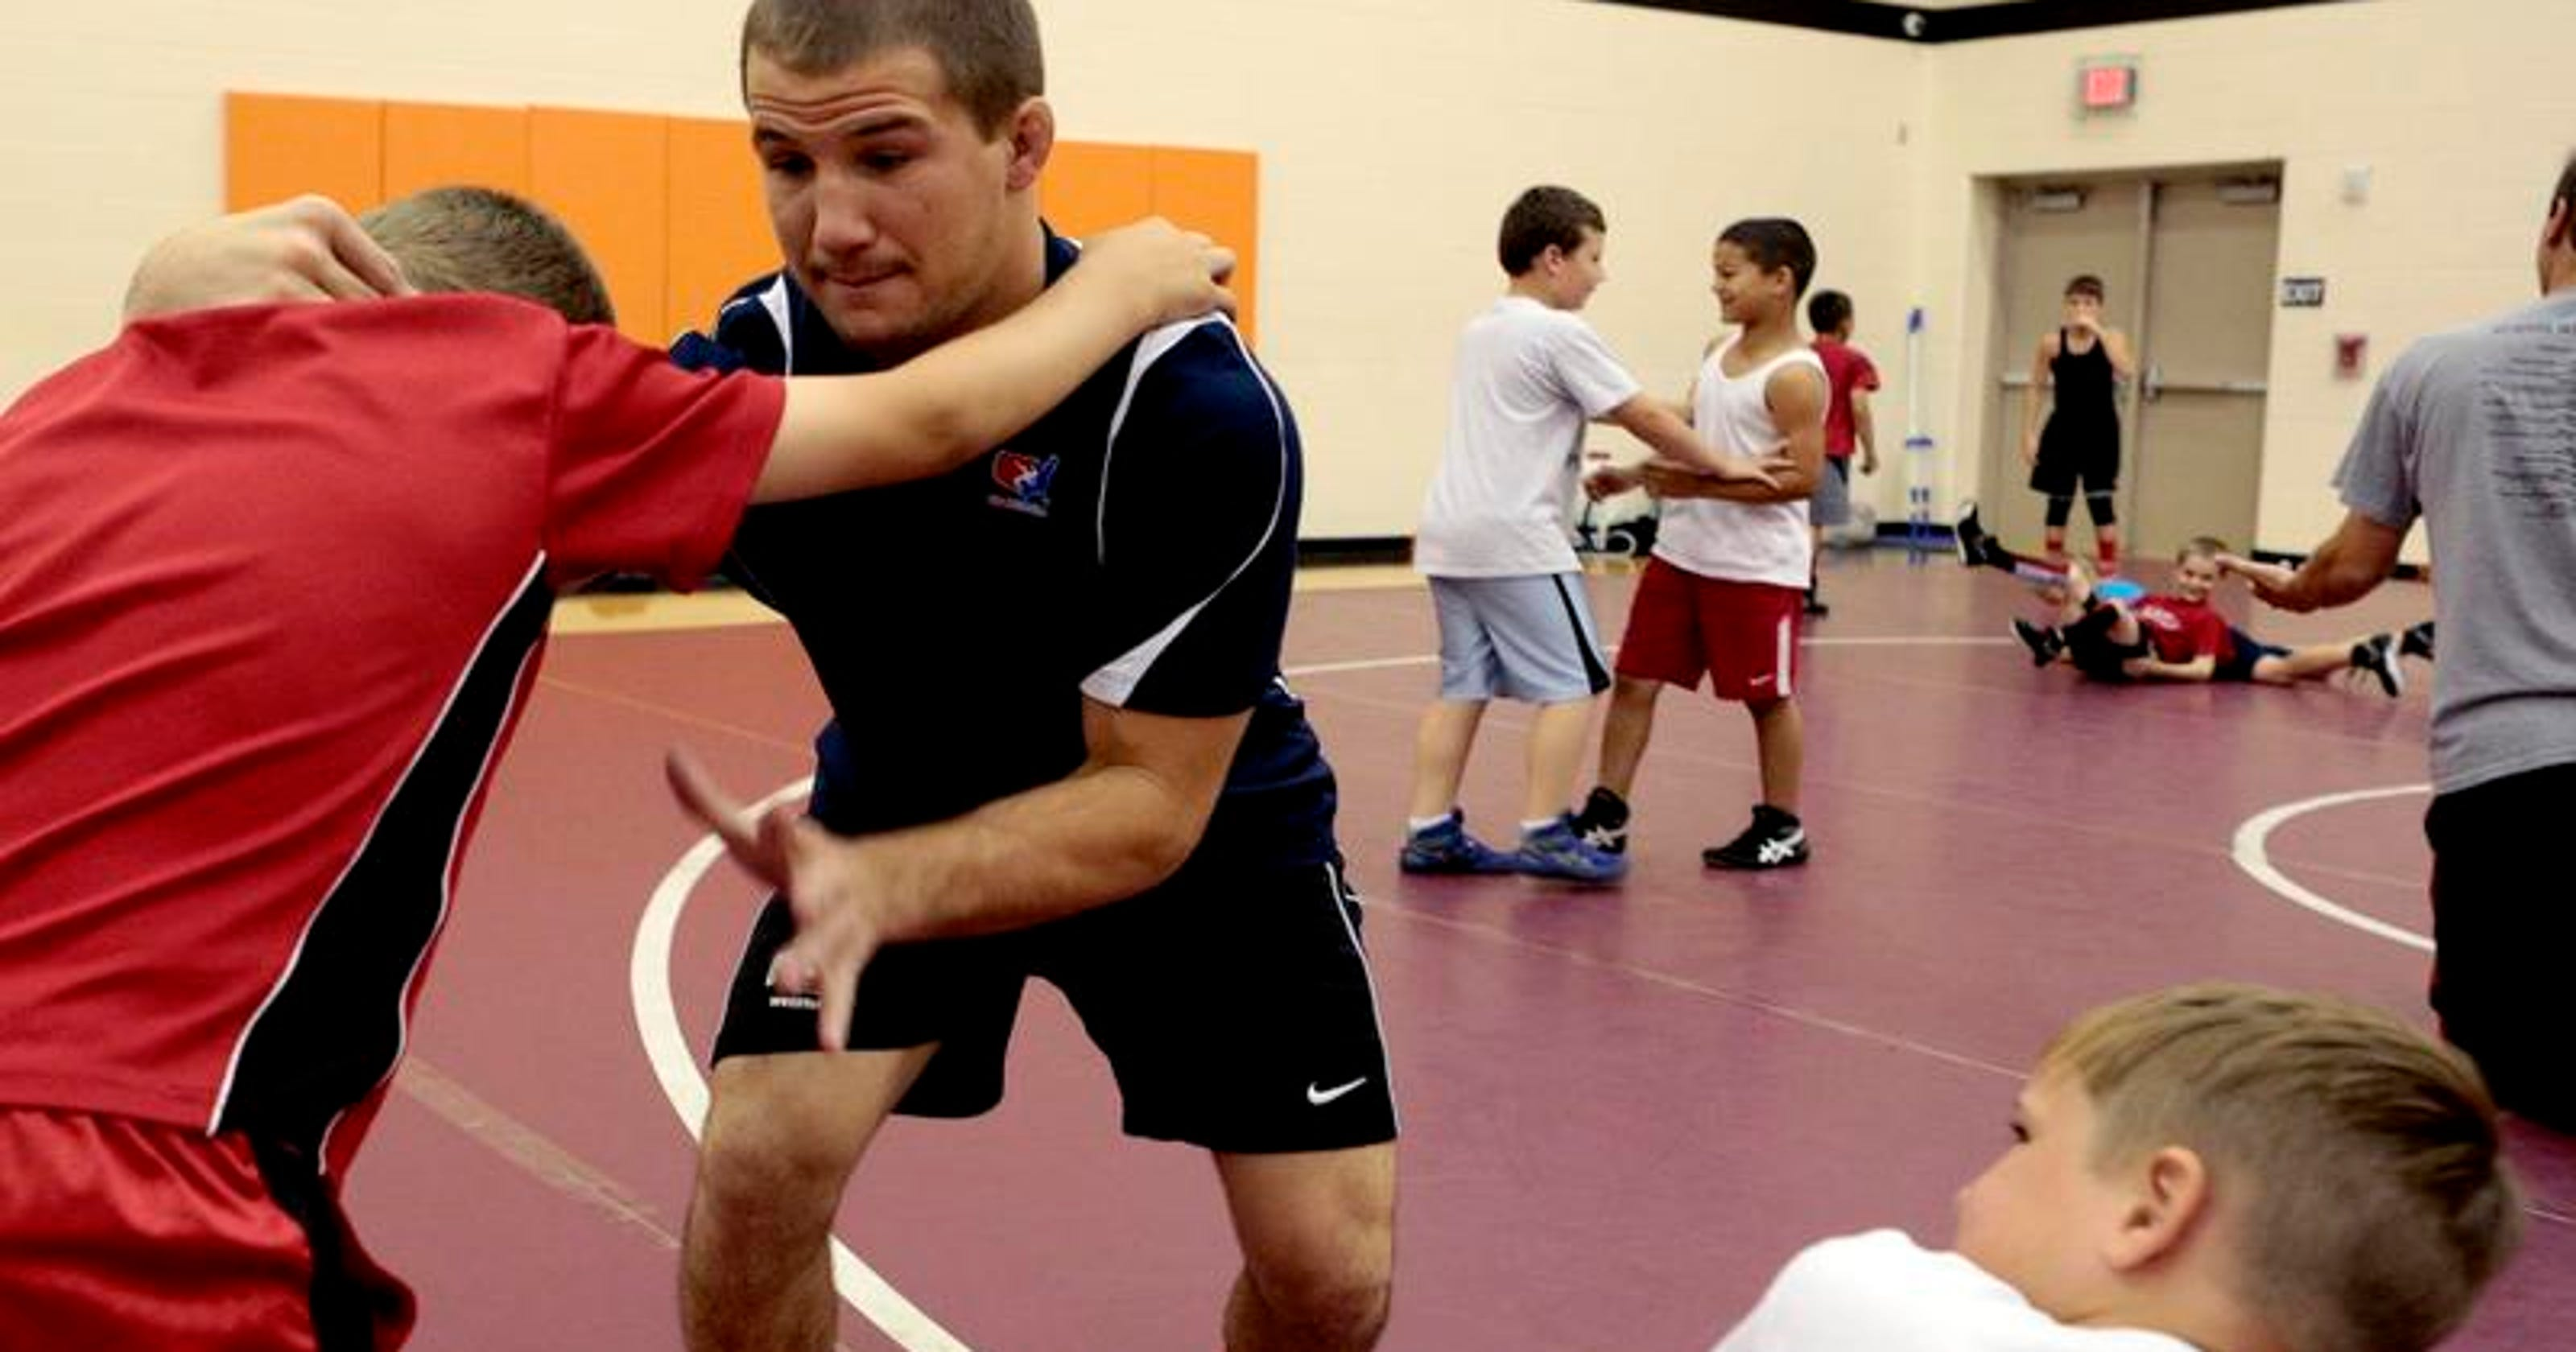 NCAA champ Stieber coaches Newark's wrestling campers